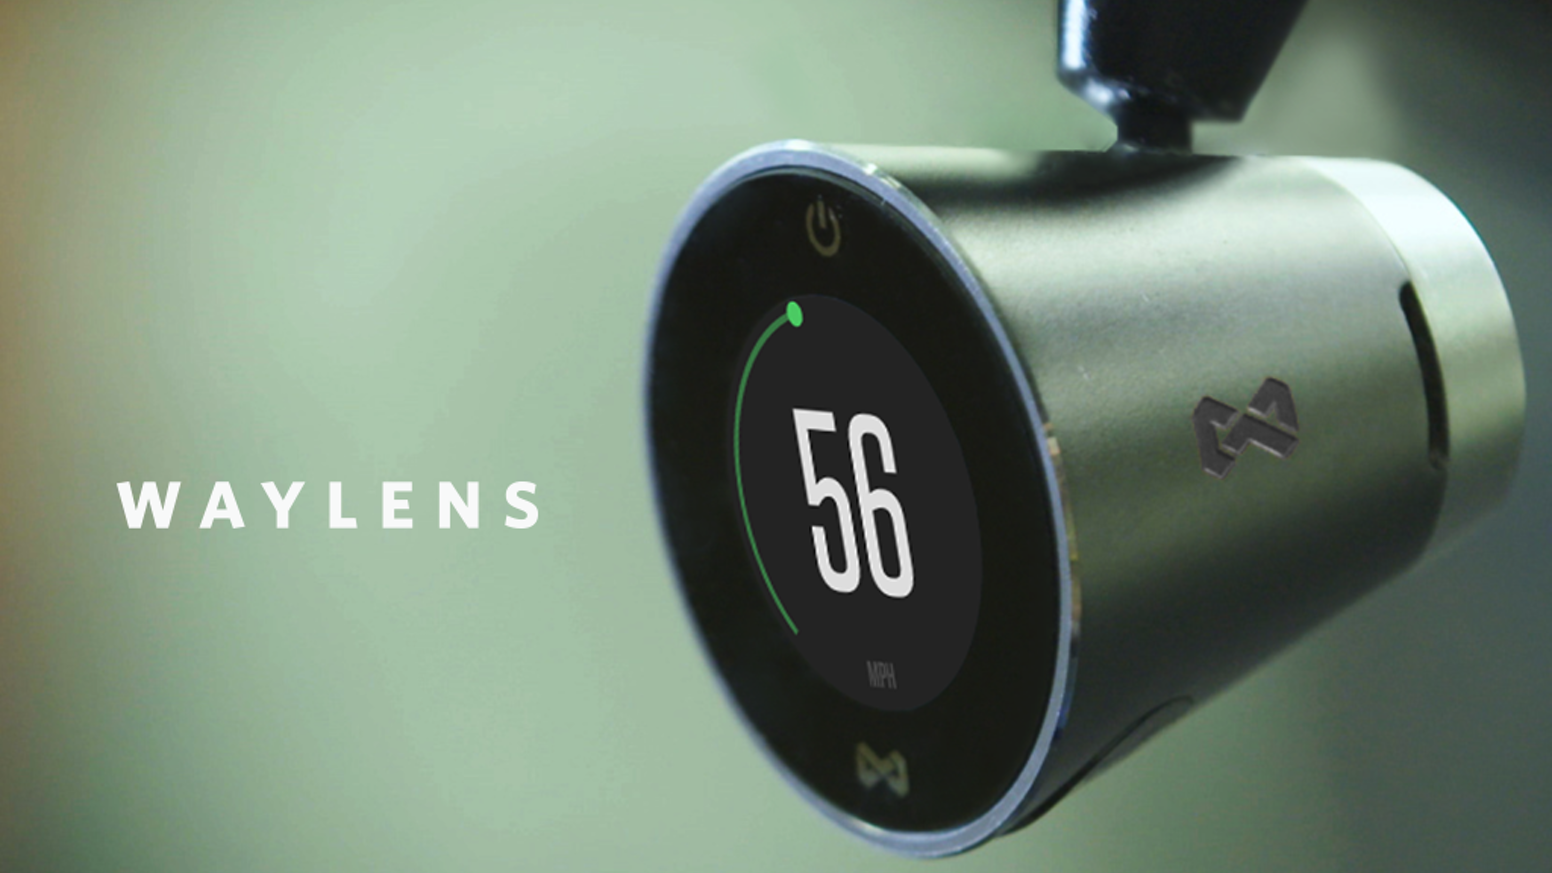 Waylens - A Data Driven Automotive Camera System by Waylens